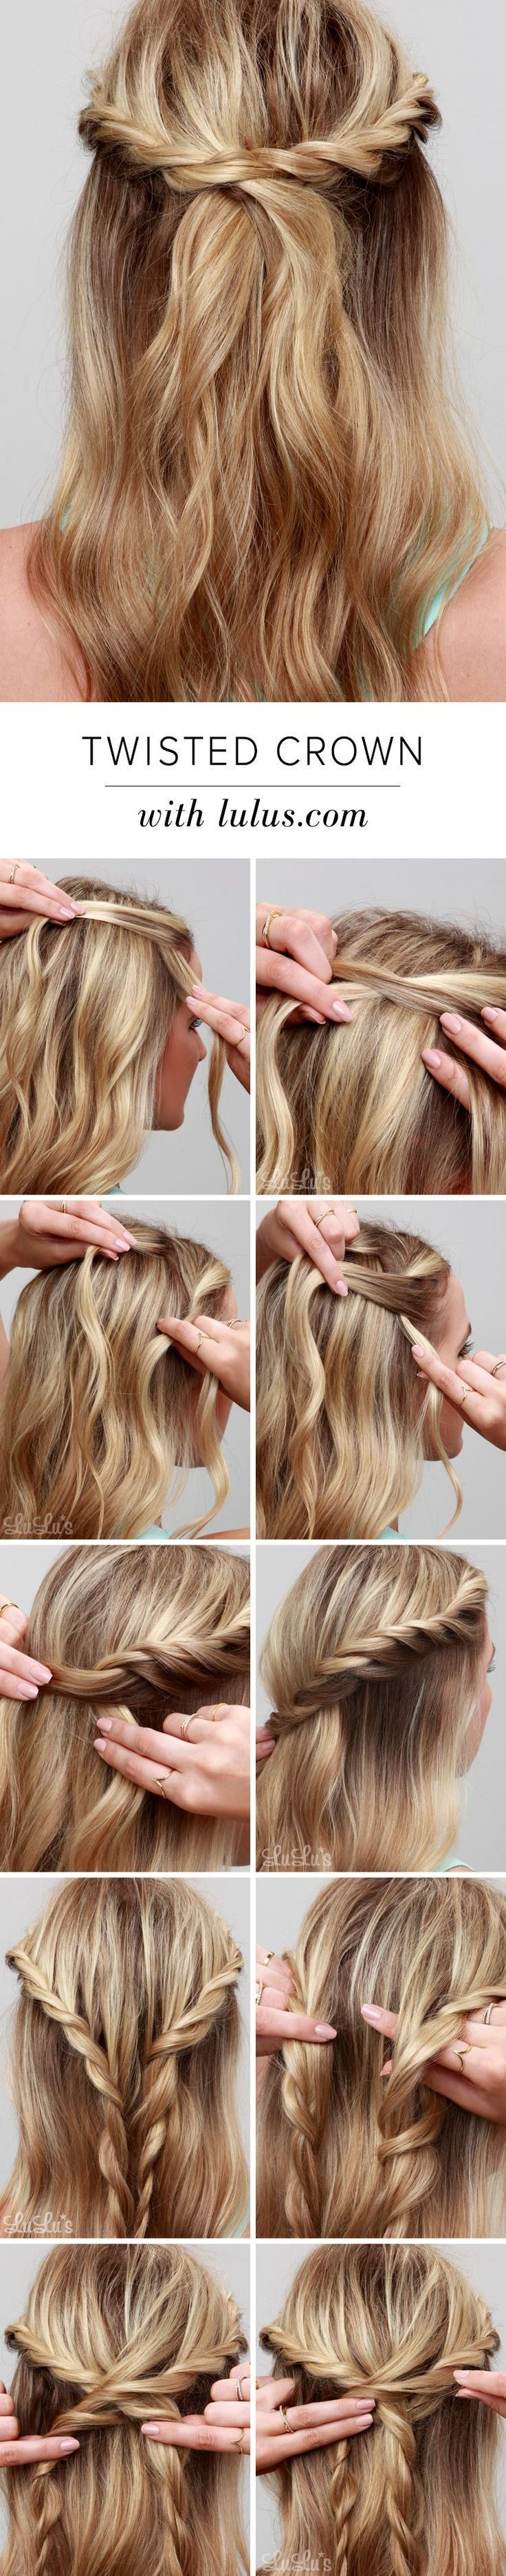 LuLu*s How-To: Twisted Crown Hair Tutorial – #Crown #Hair #halboffen #HowTo #LuL…